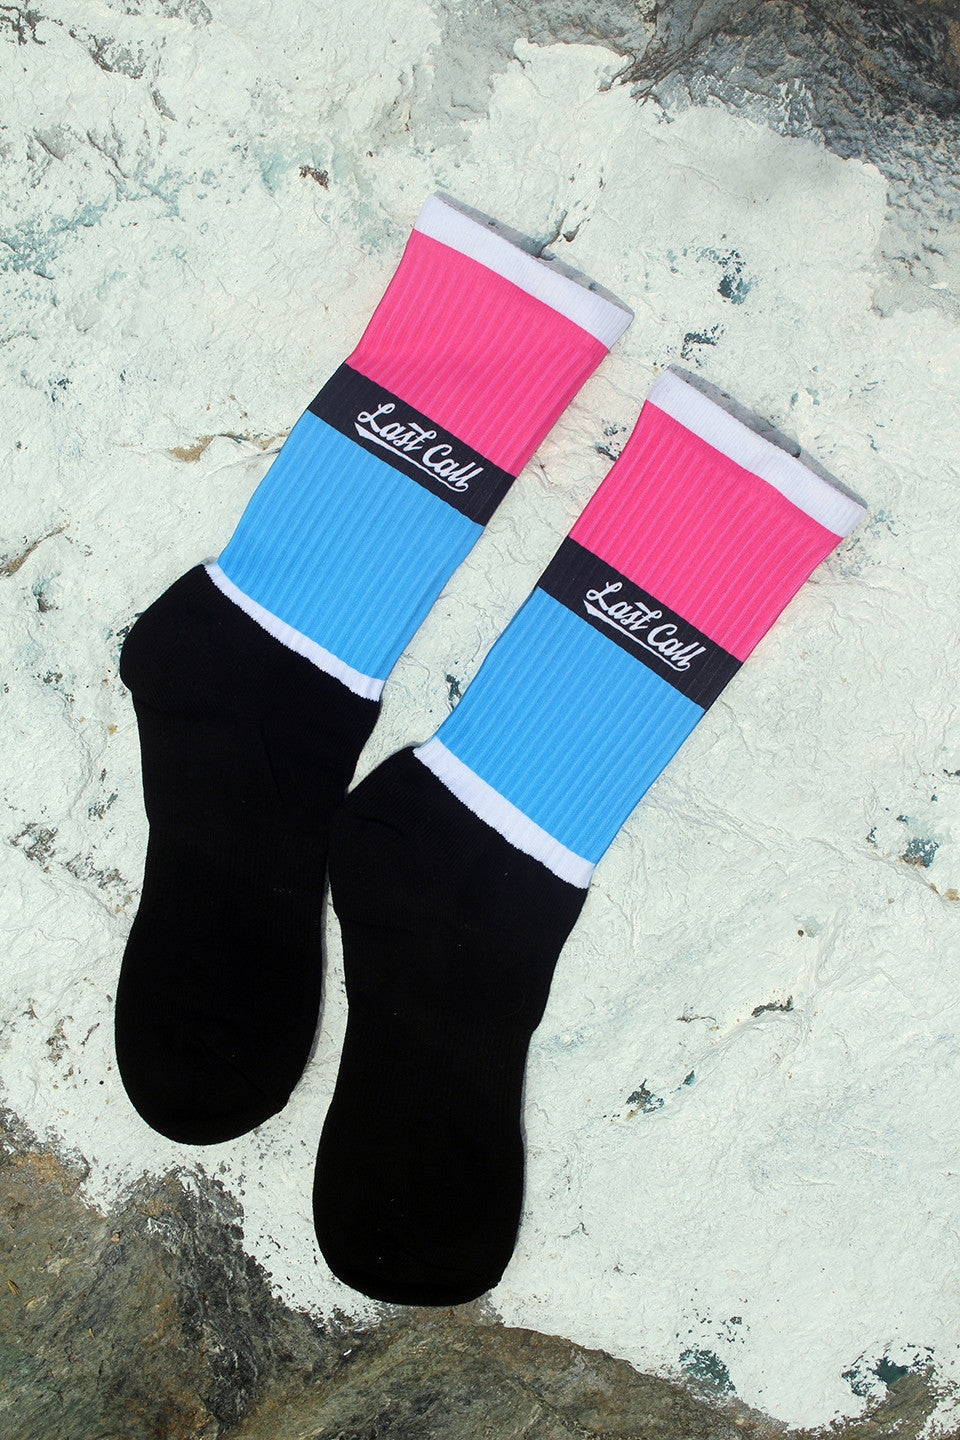 Pbb (Pink Black Blue) Socks